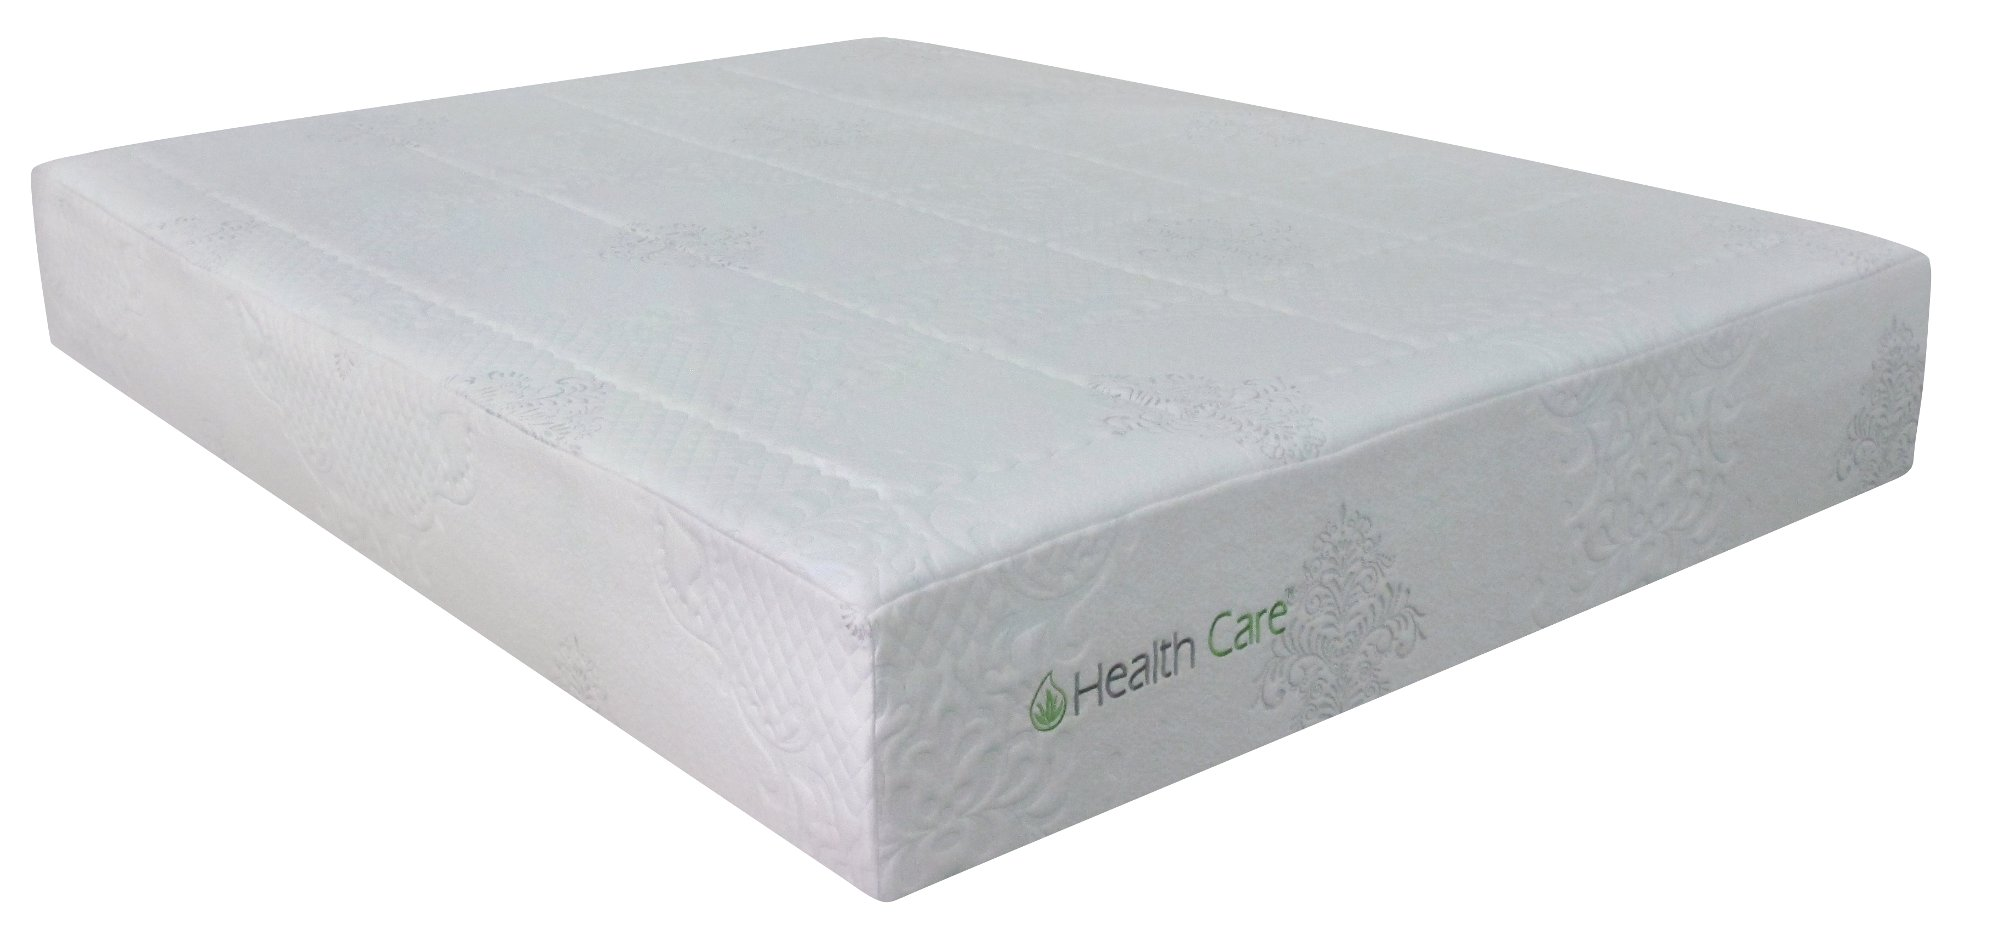 California King 12 Luxurygel Mattress With Adjustable Base Rc Willey Furniture Store